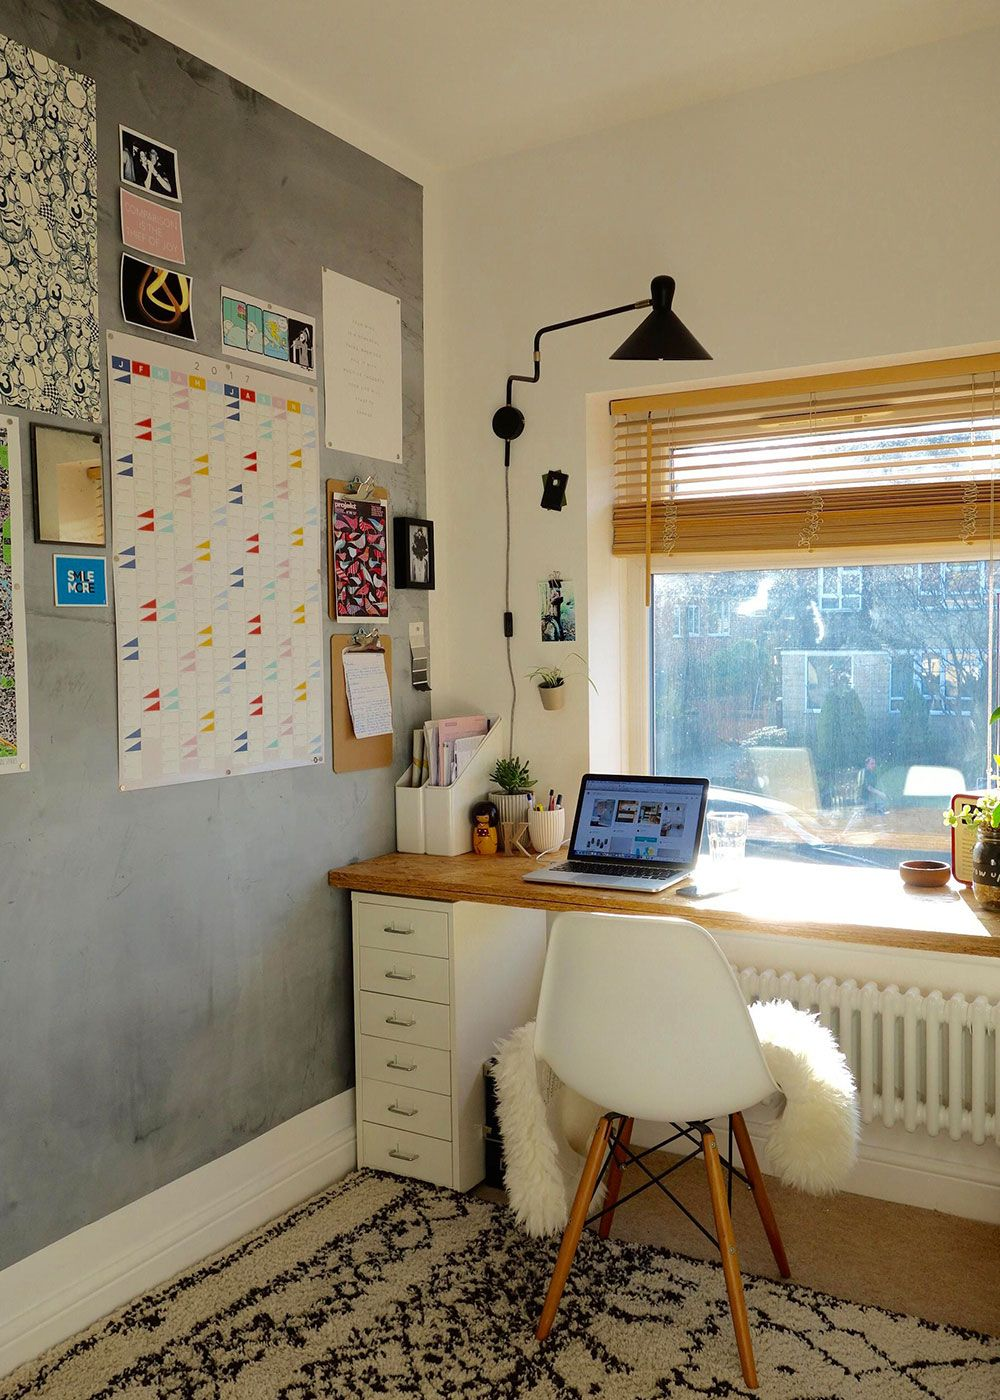 You Donu0027t Need A Dedicated Room To Create Your Own Home Office Space